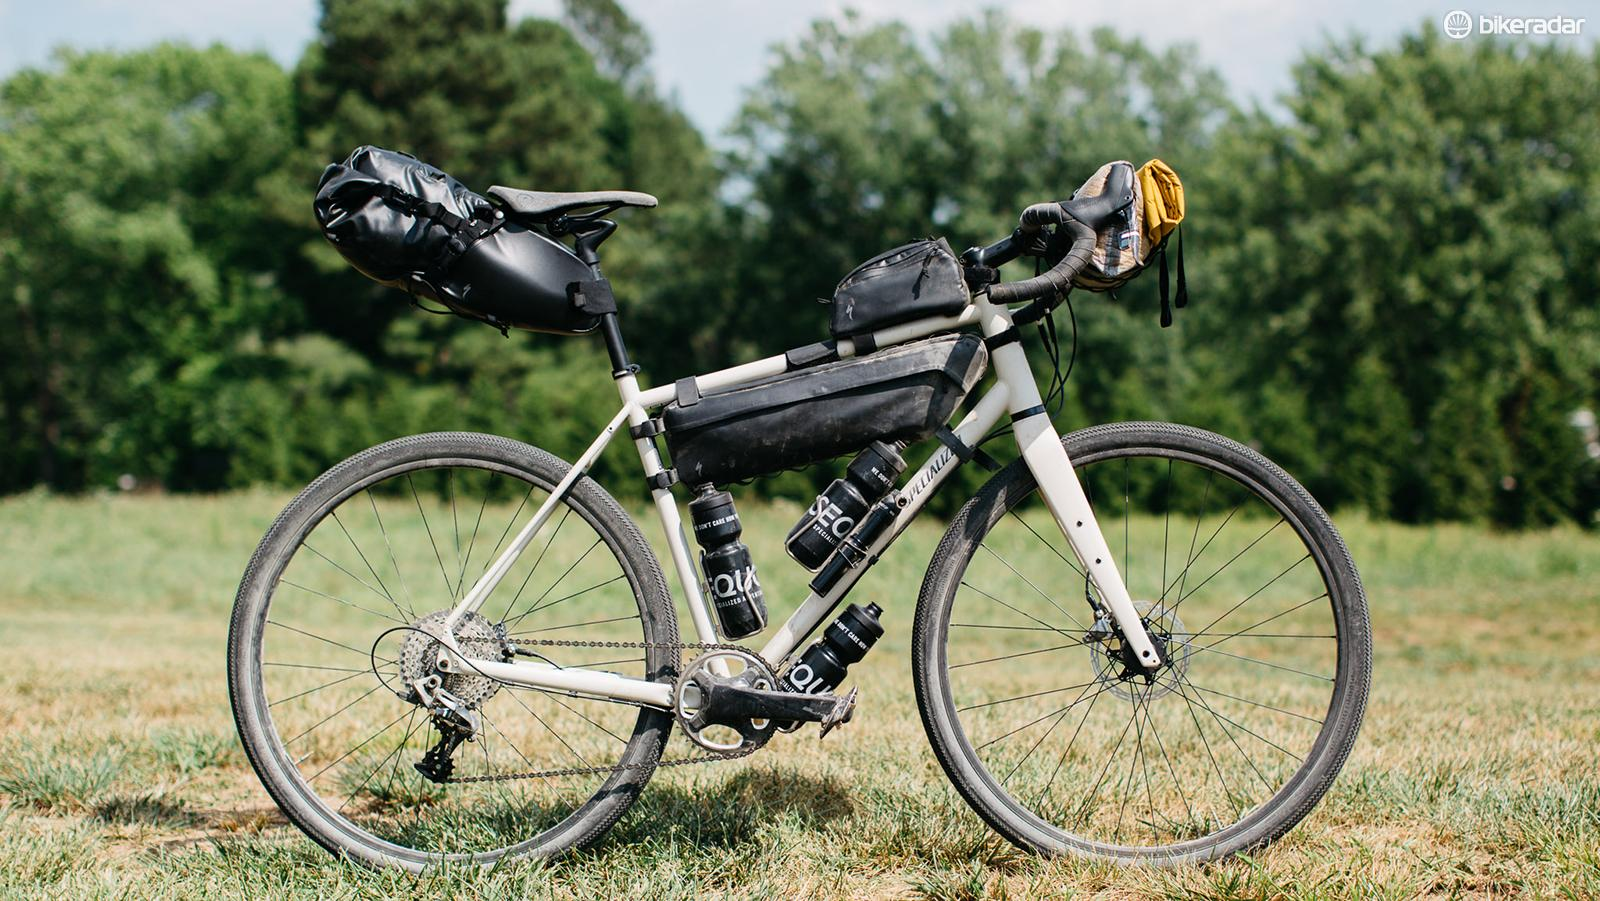 The New 2017 Specialized Sequoia Light Touring Bike